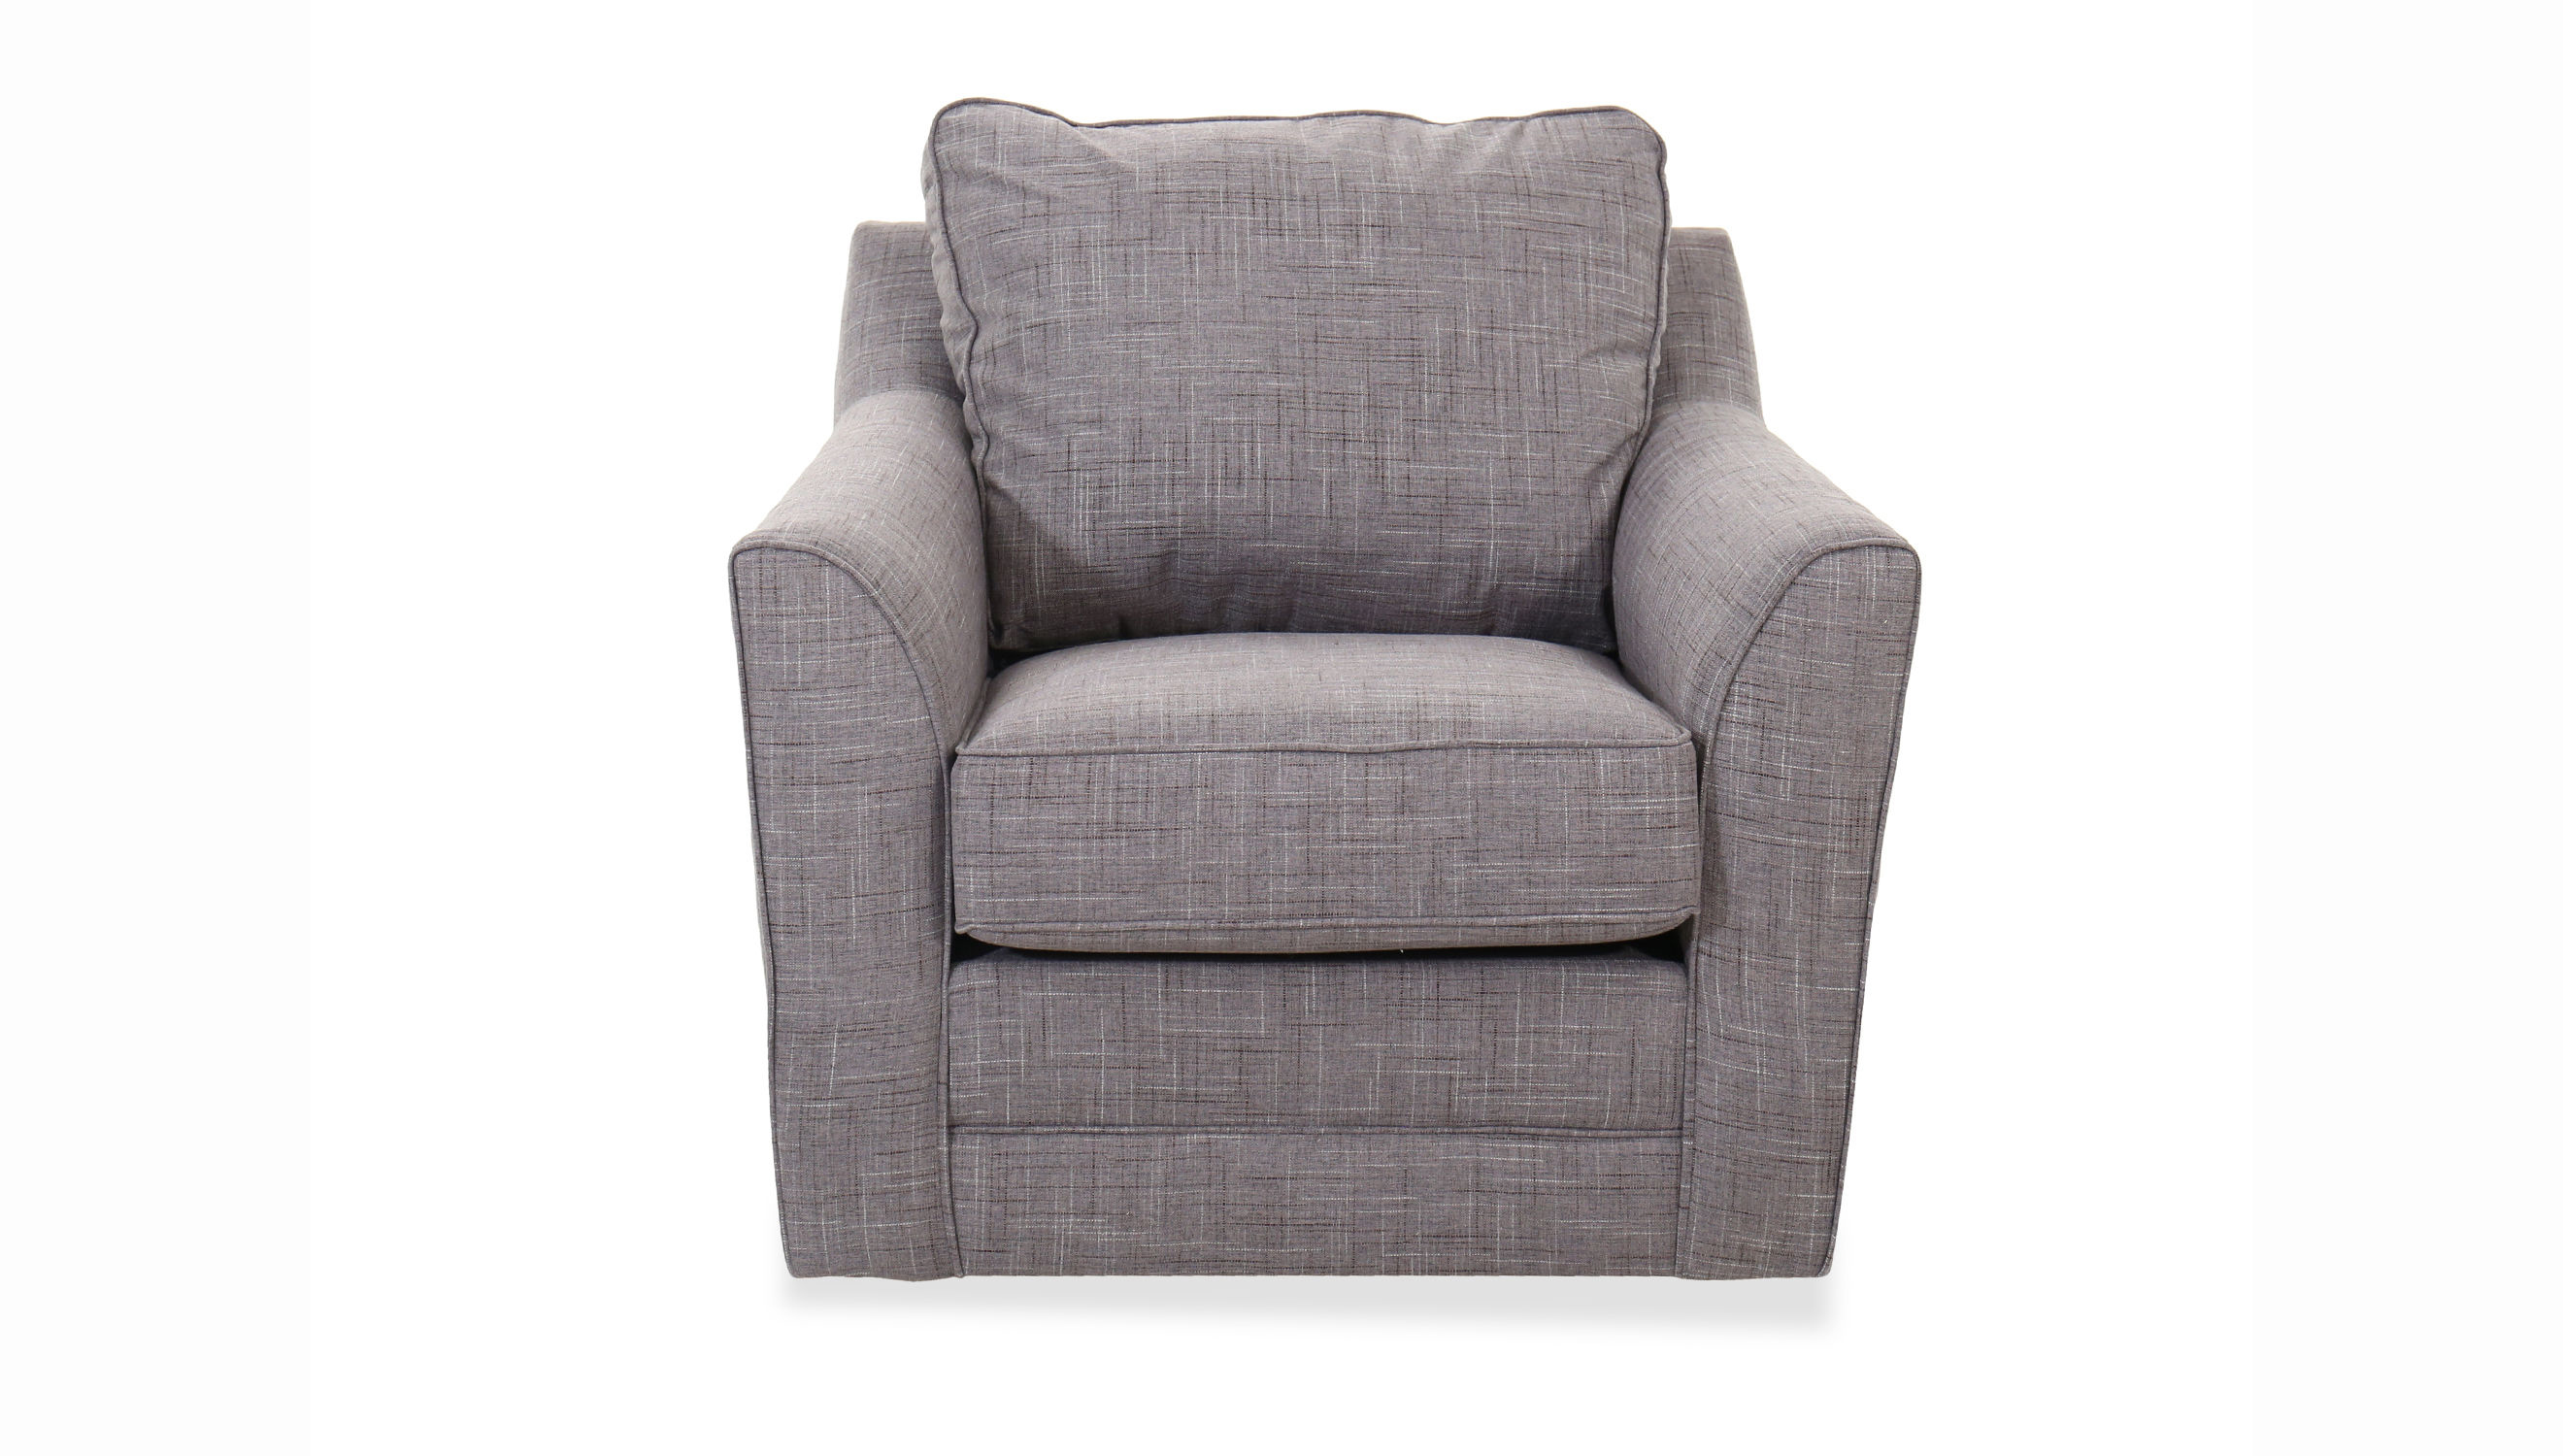 UN2013AG Alena Ggrey (Swivel Chair)